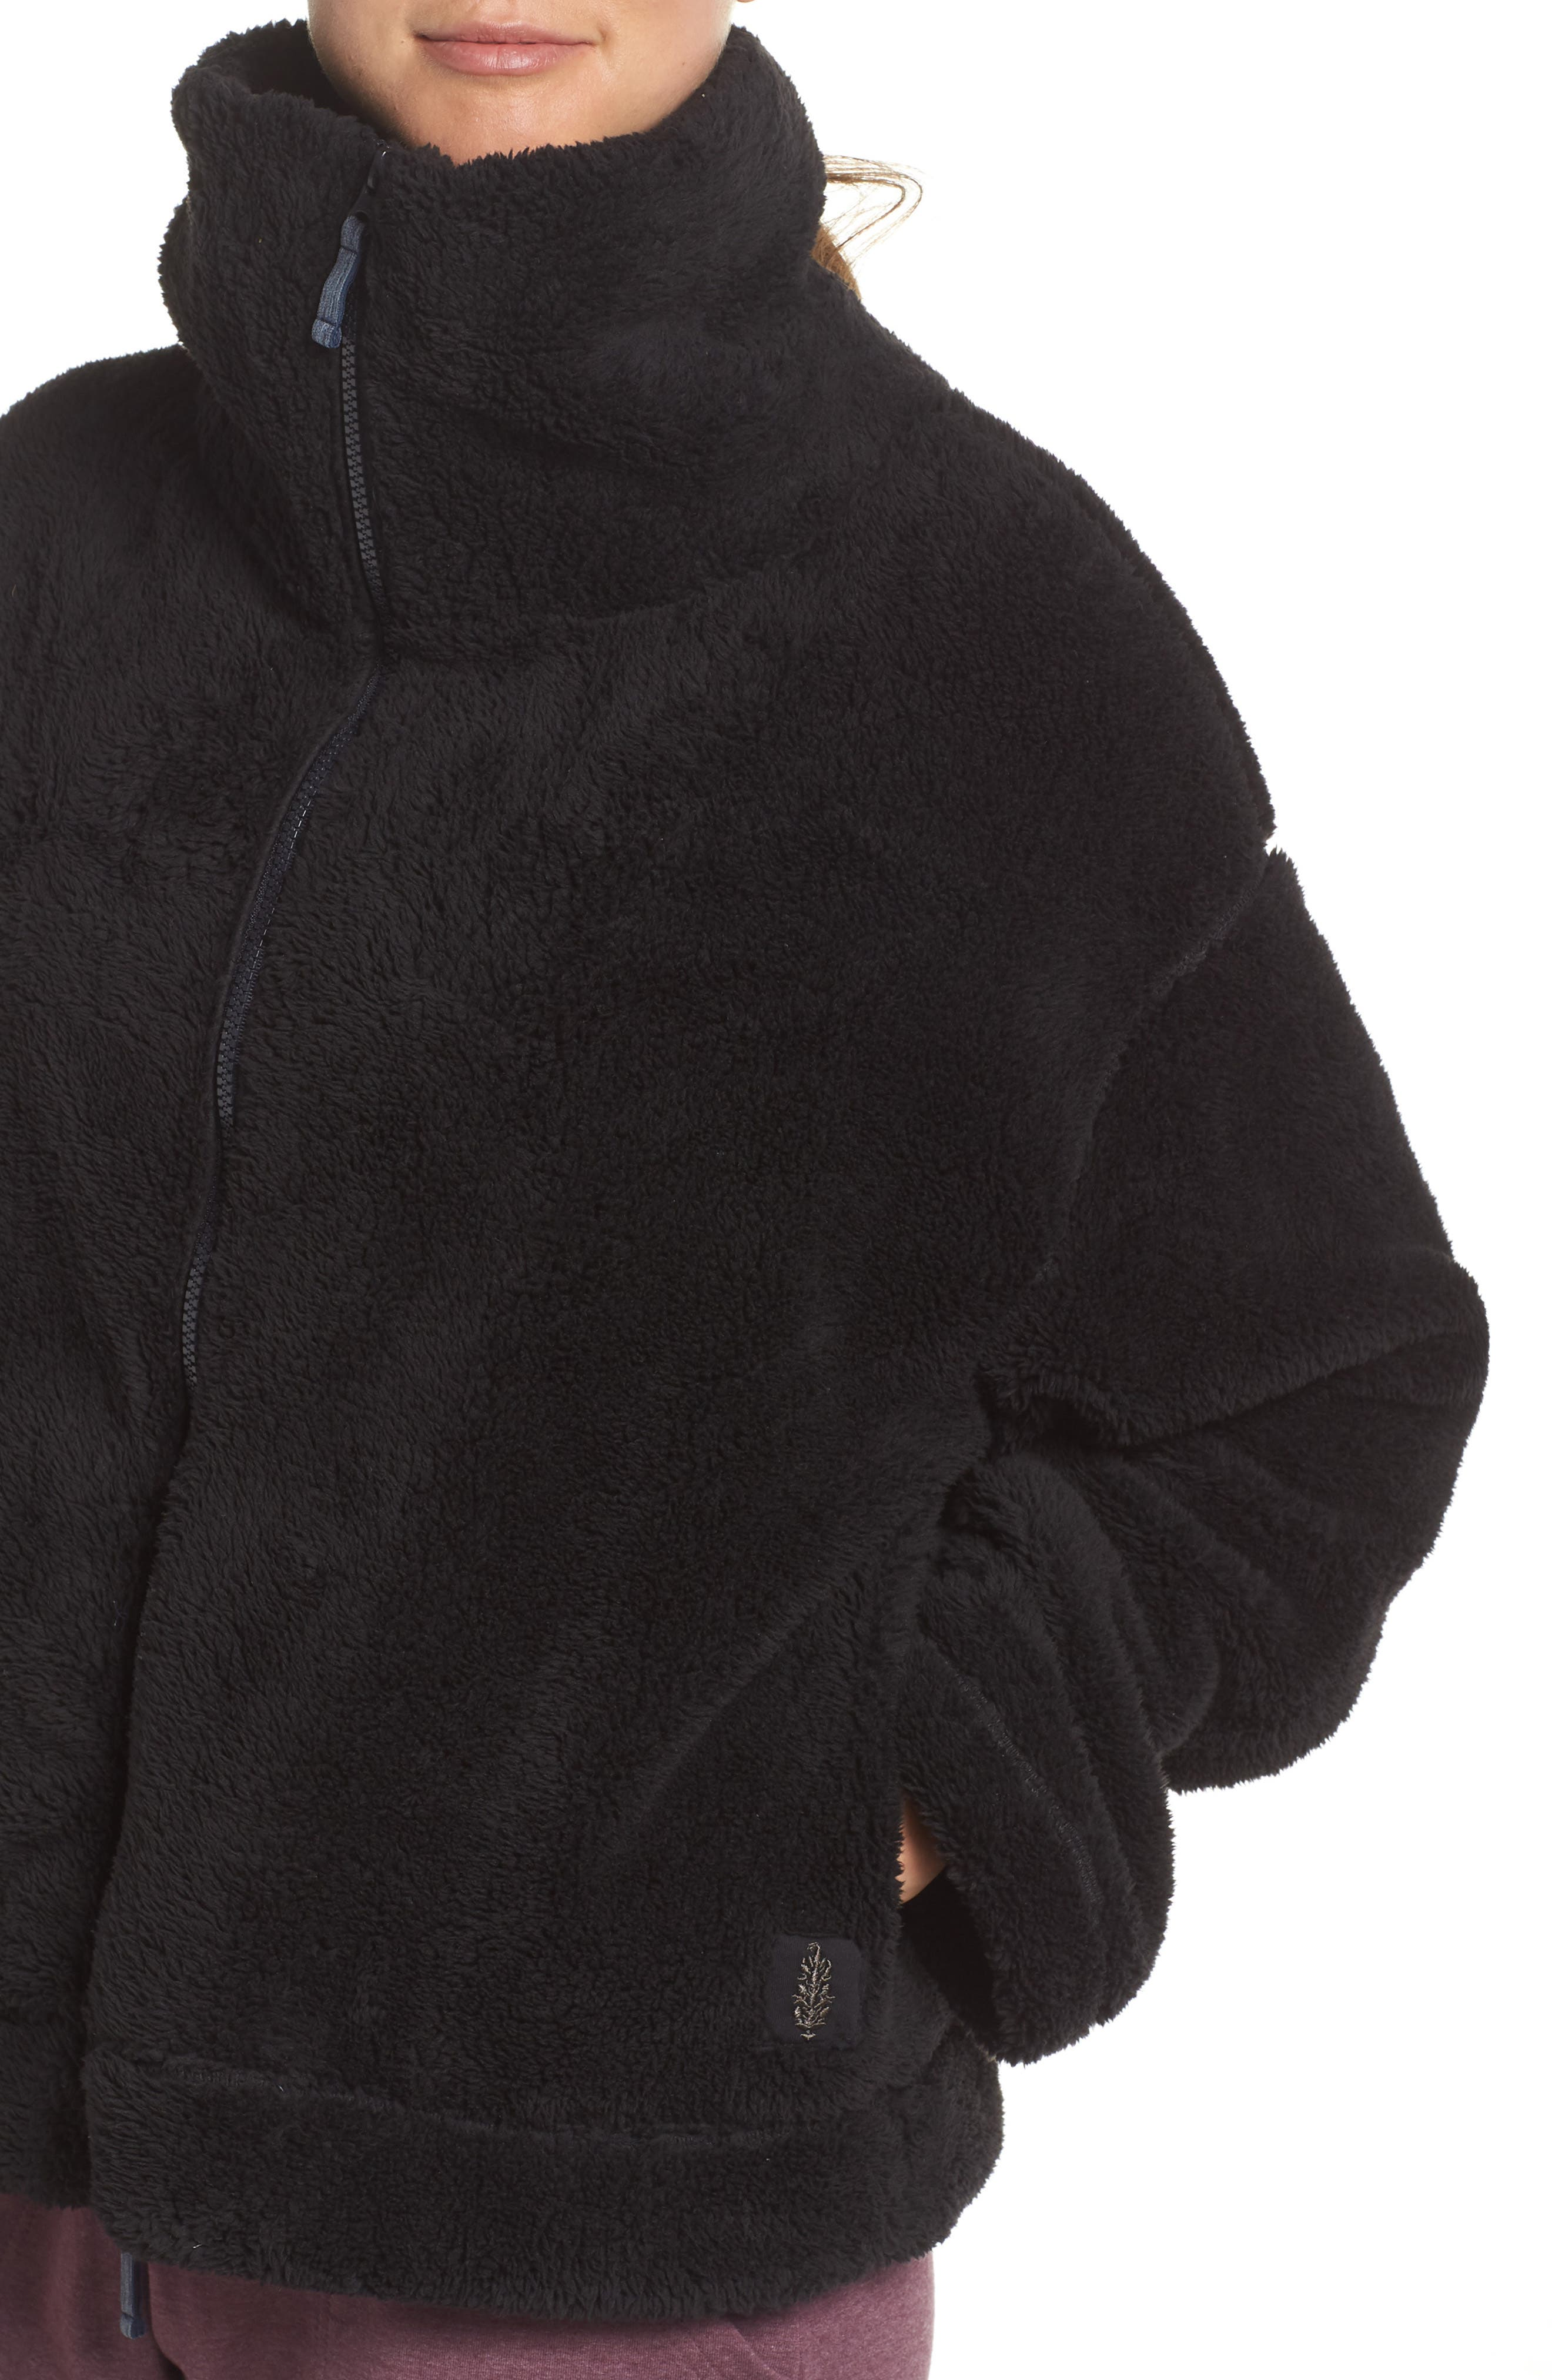 Dazed Fleece Jacket,                             Alternate thumbnail 4, color,                             BLACK